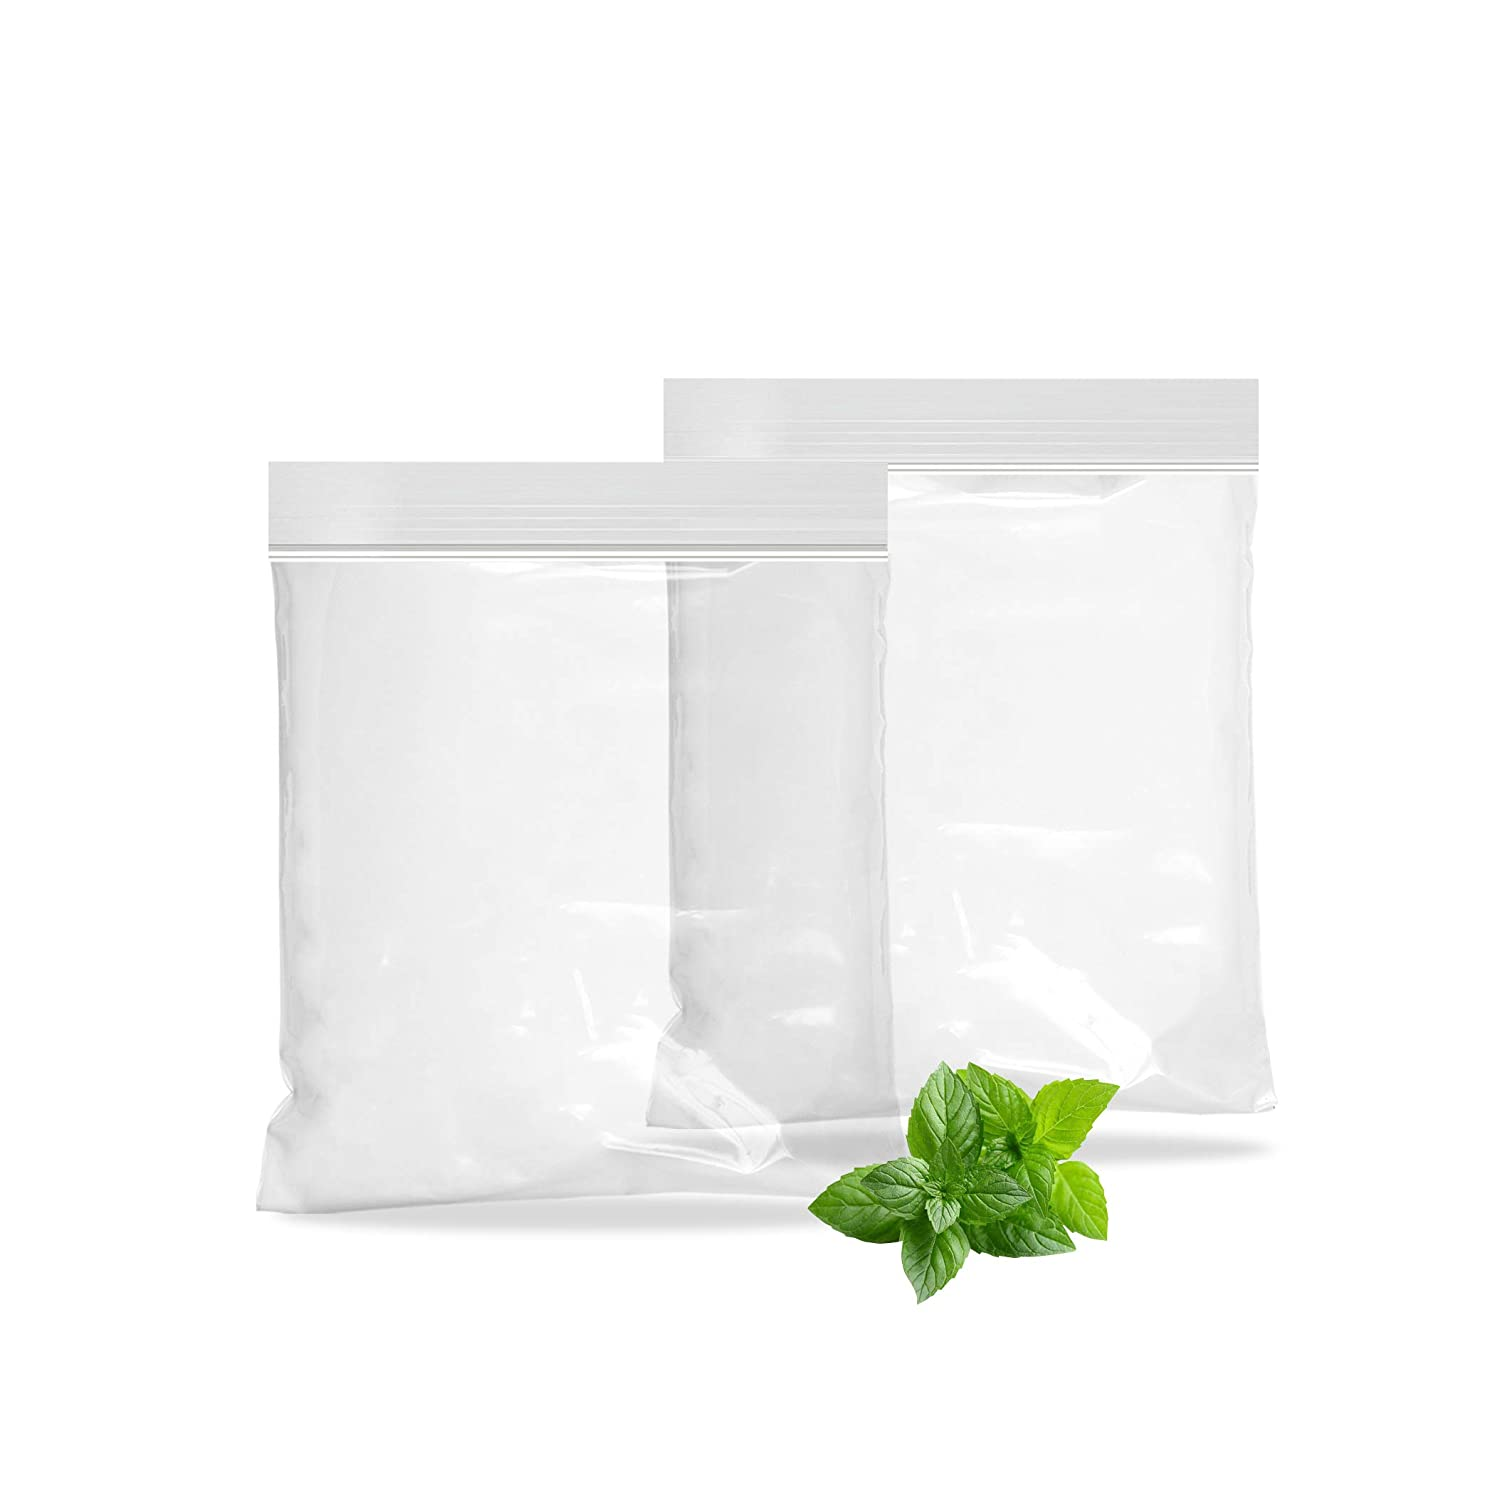 APQ Pack of 100 Polypropylene Zipper Locking Bags 4 x 6. Thickness 2 mil. Clear Seal Top Bags 4x6. High Clarity Food Storage Bags for Industrial, Food Service.